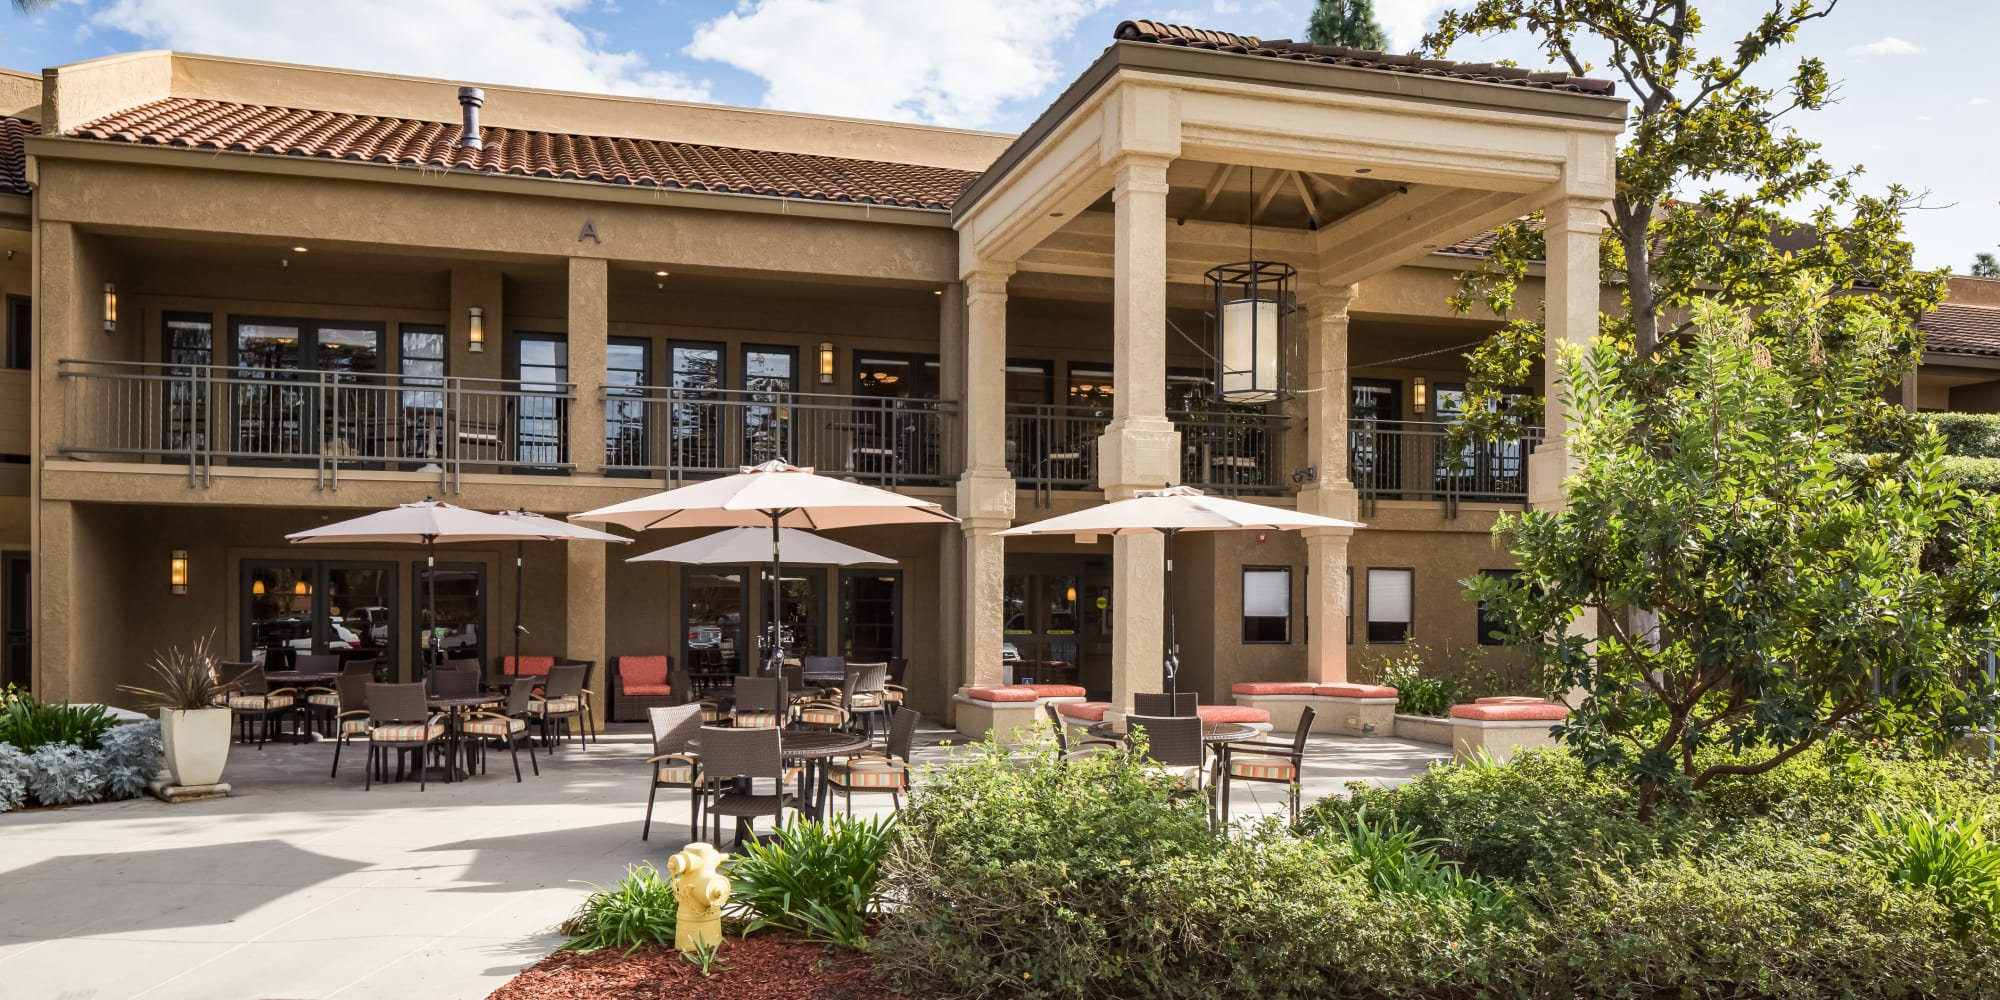 The Reserve at Thousand Oaks in Thousand Oaks, California